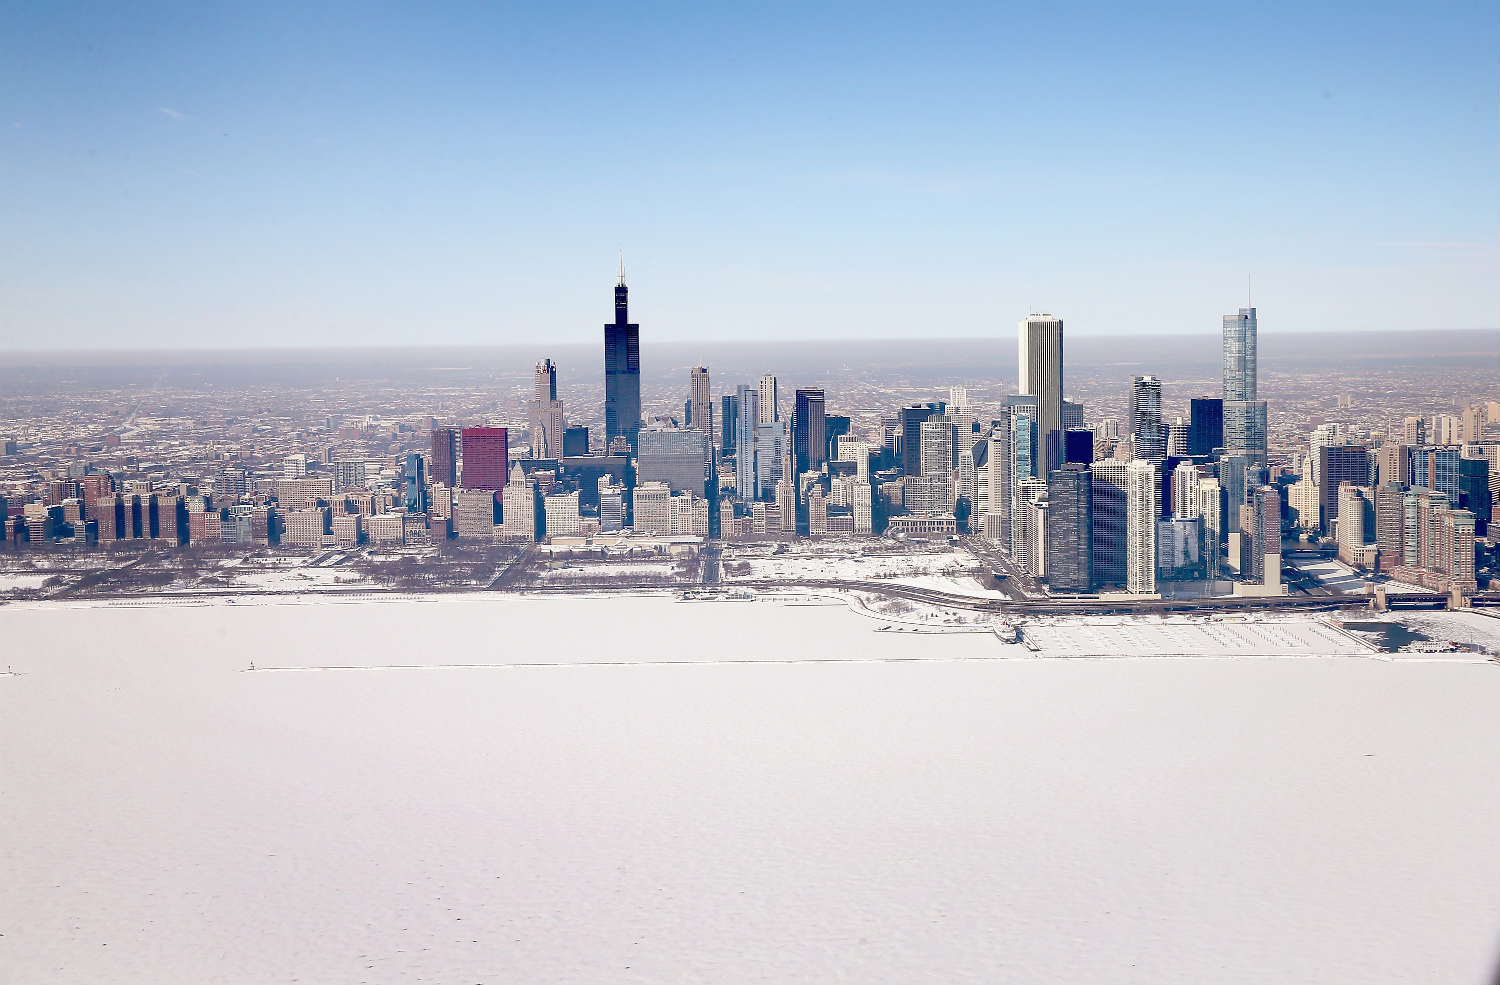 The winter was brutal in Midwestern cities like Chicago